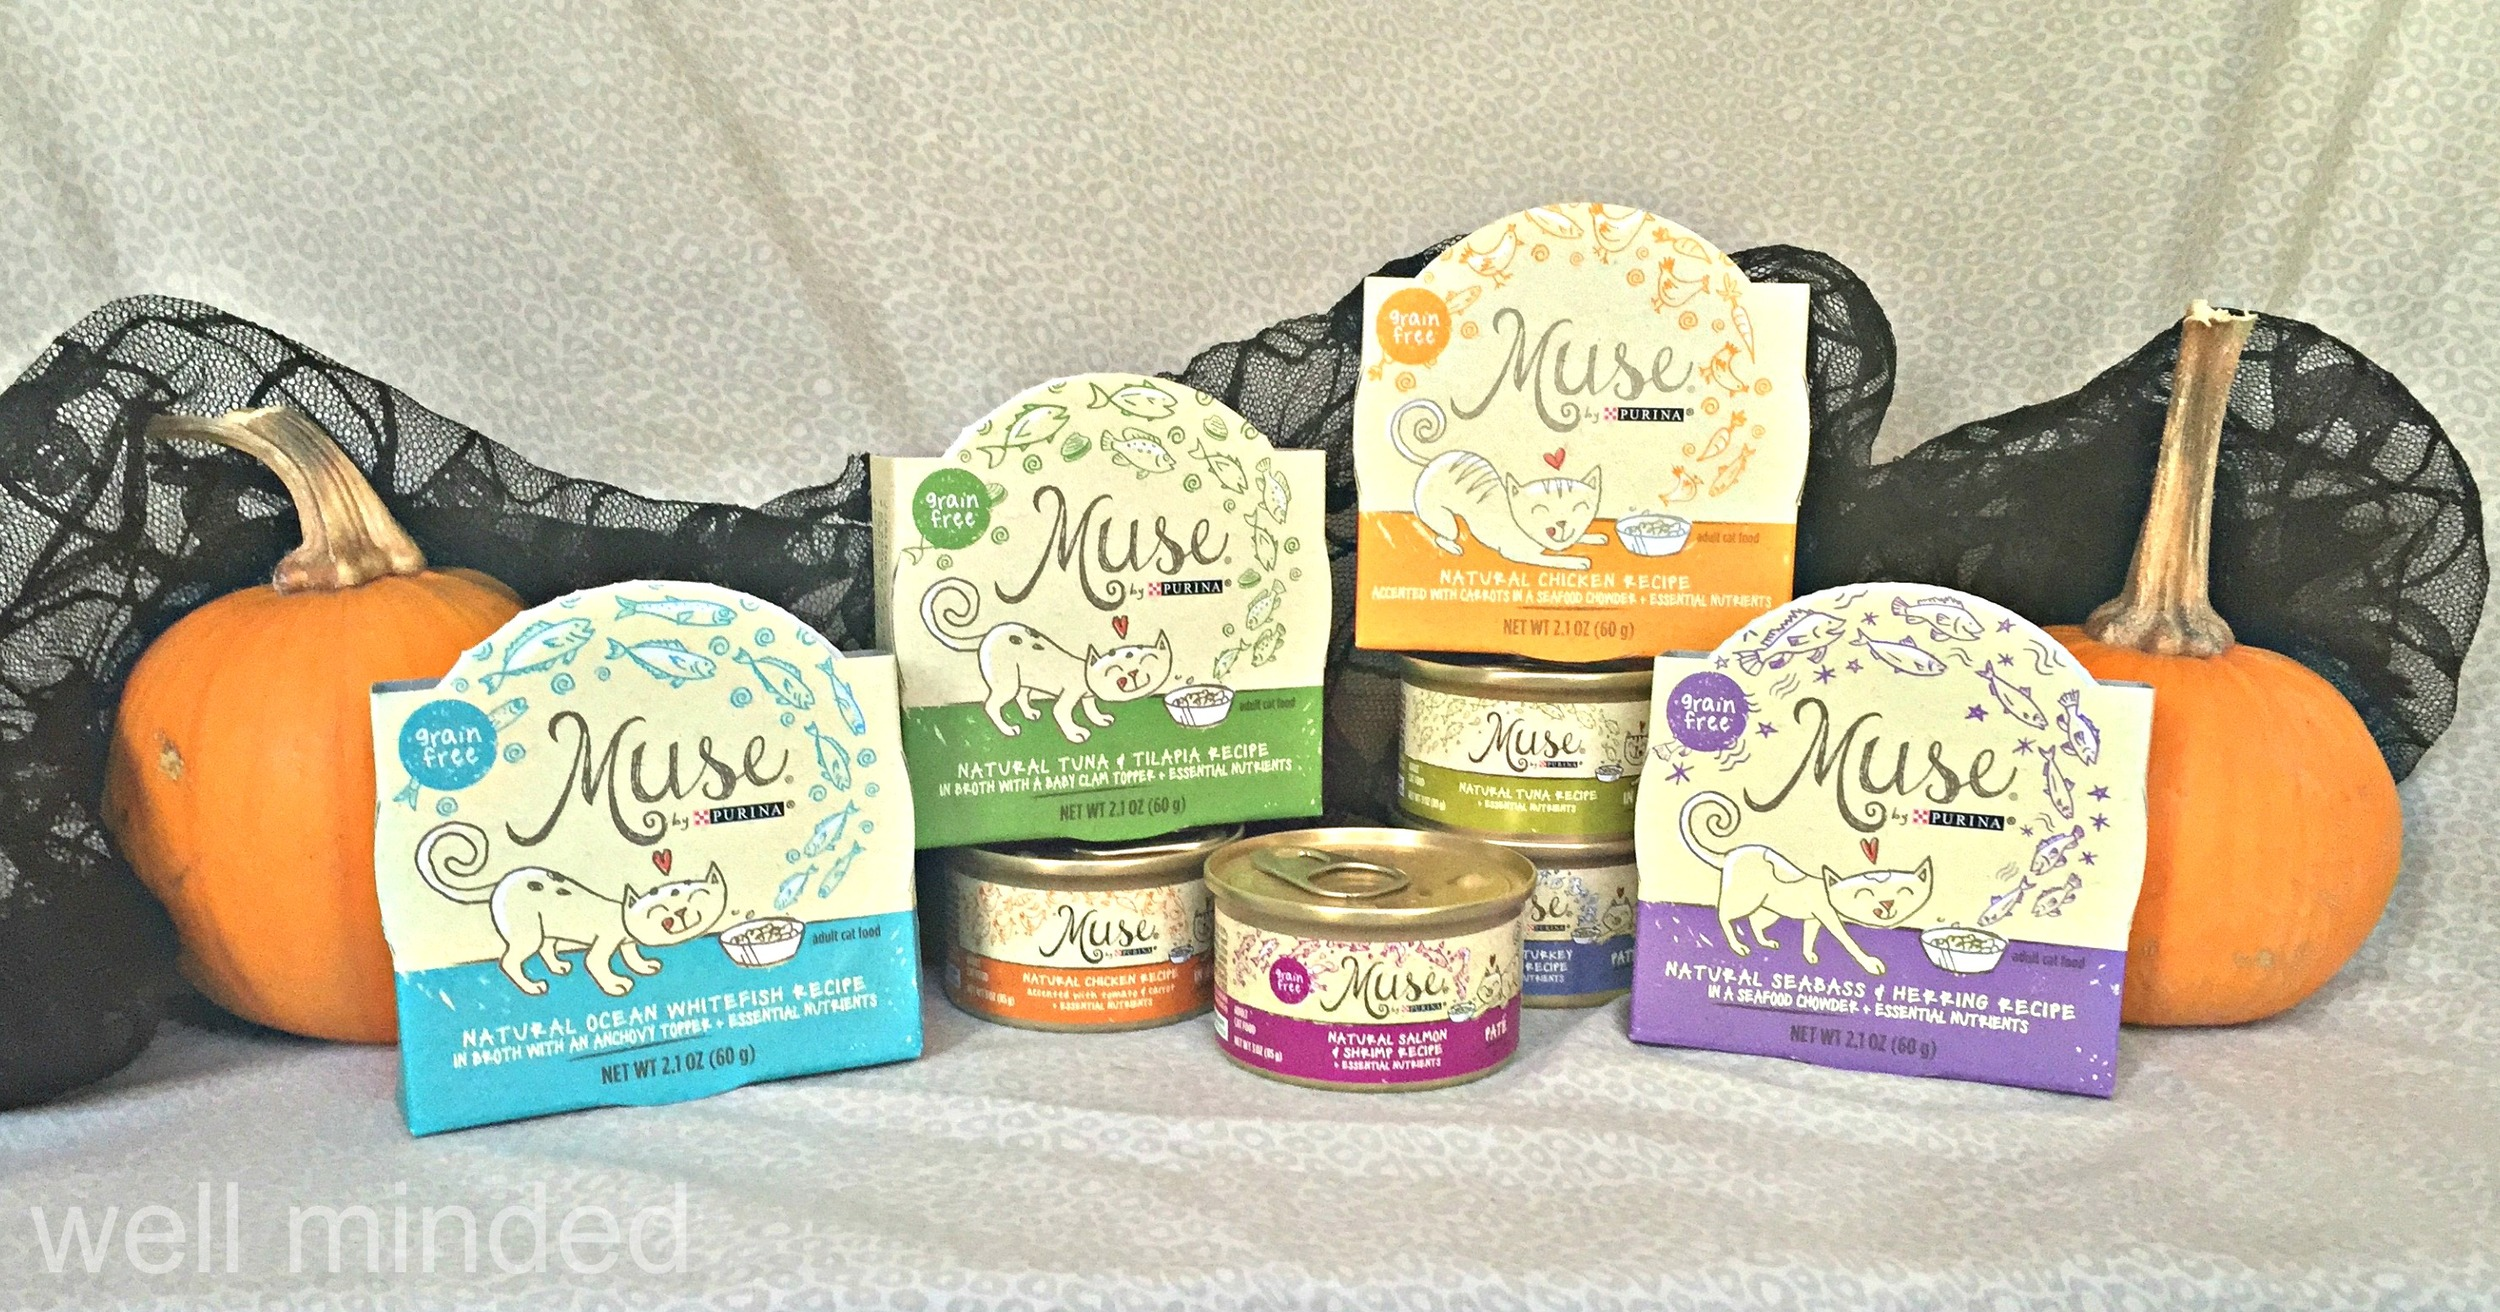 Purina Muse offers a huge variety of grain-free natural nutrition options for your cat. We chose these to try first.